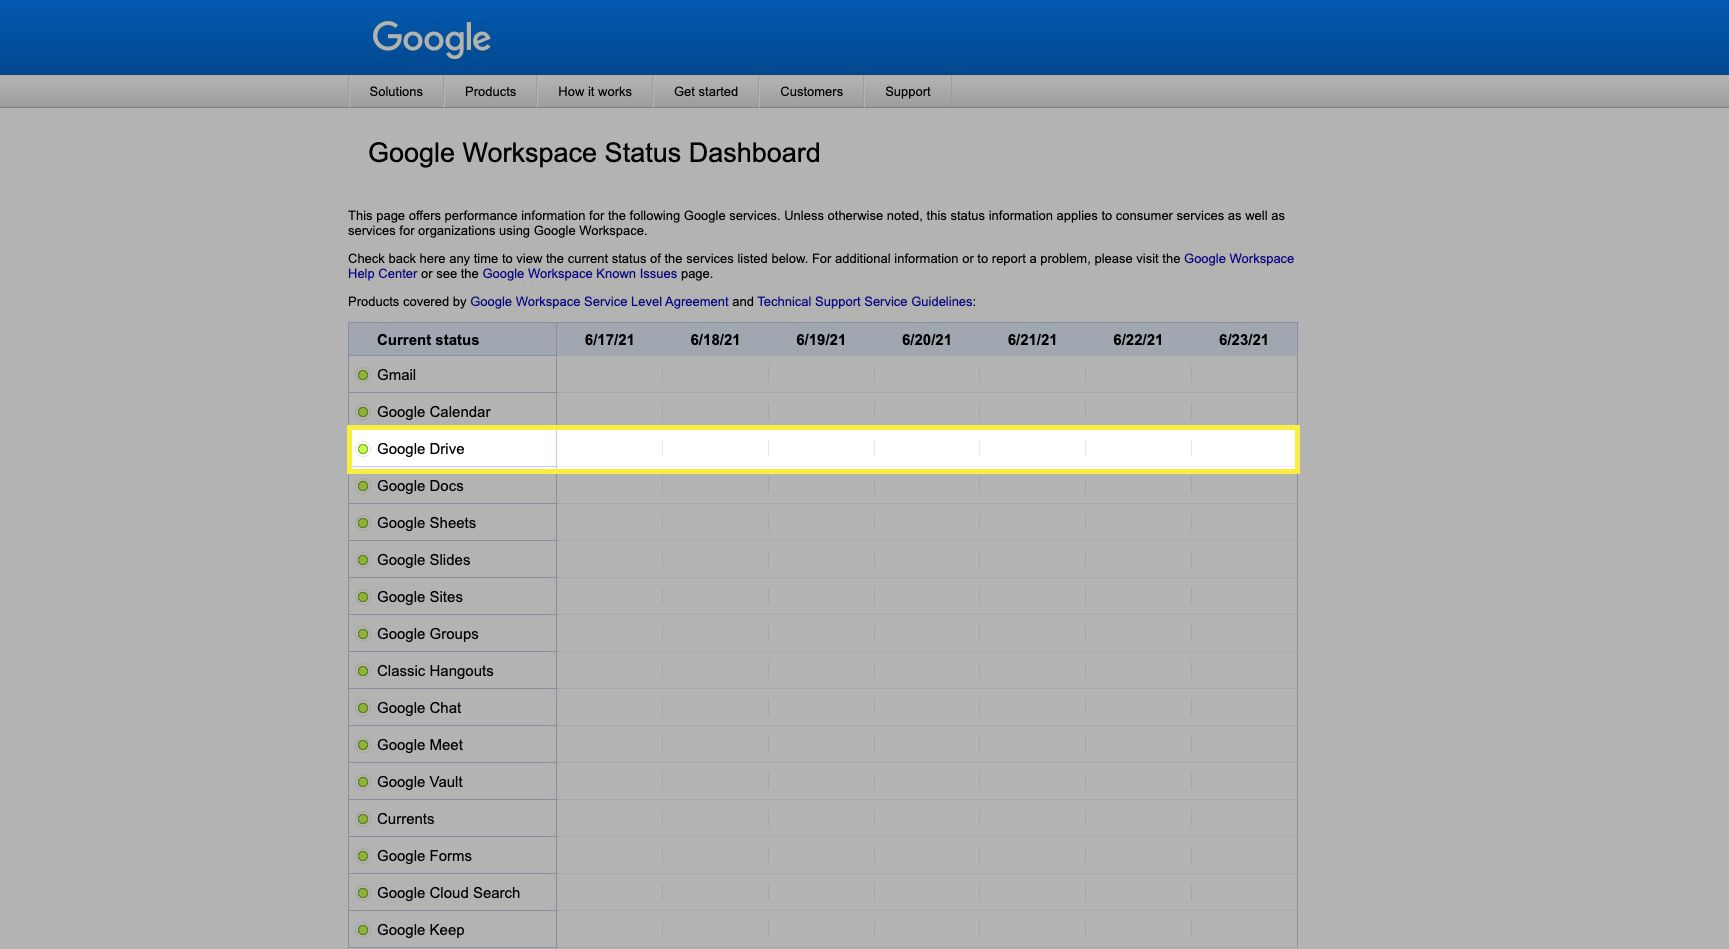 Google Workspace Status Dashboard with Google Drive highlighted